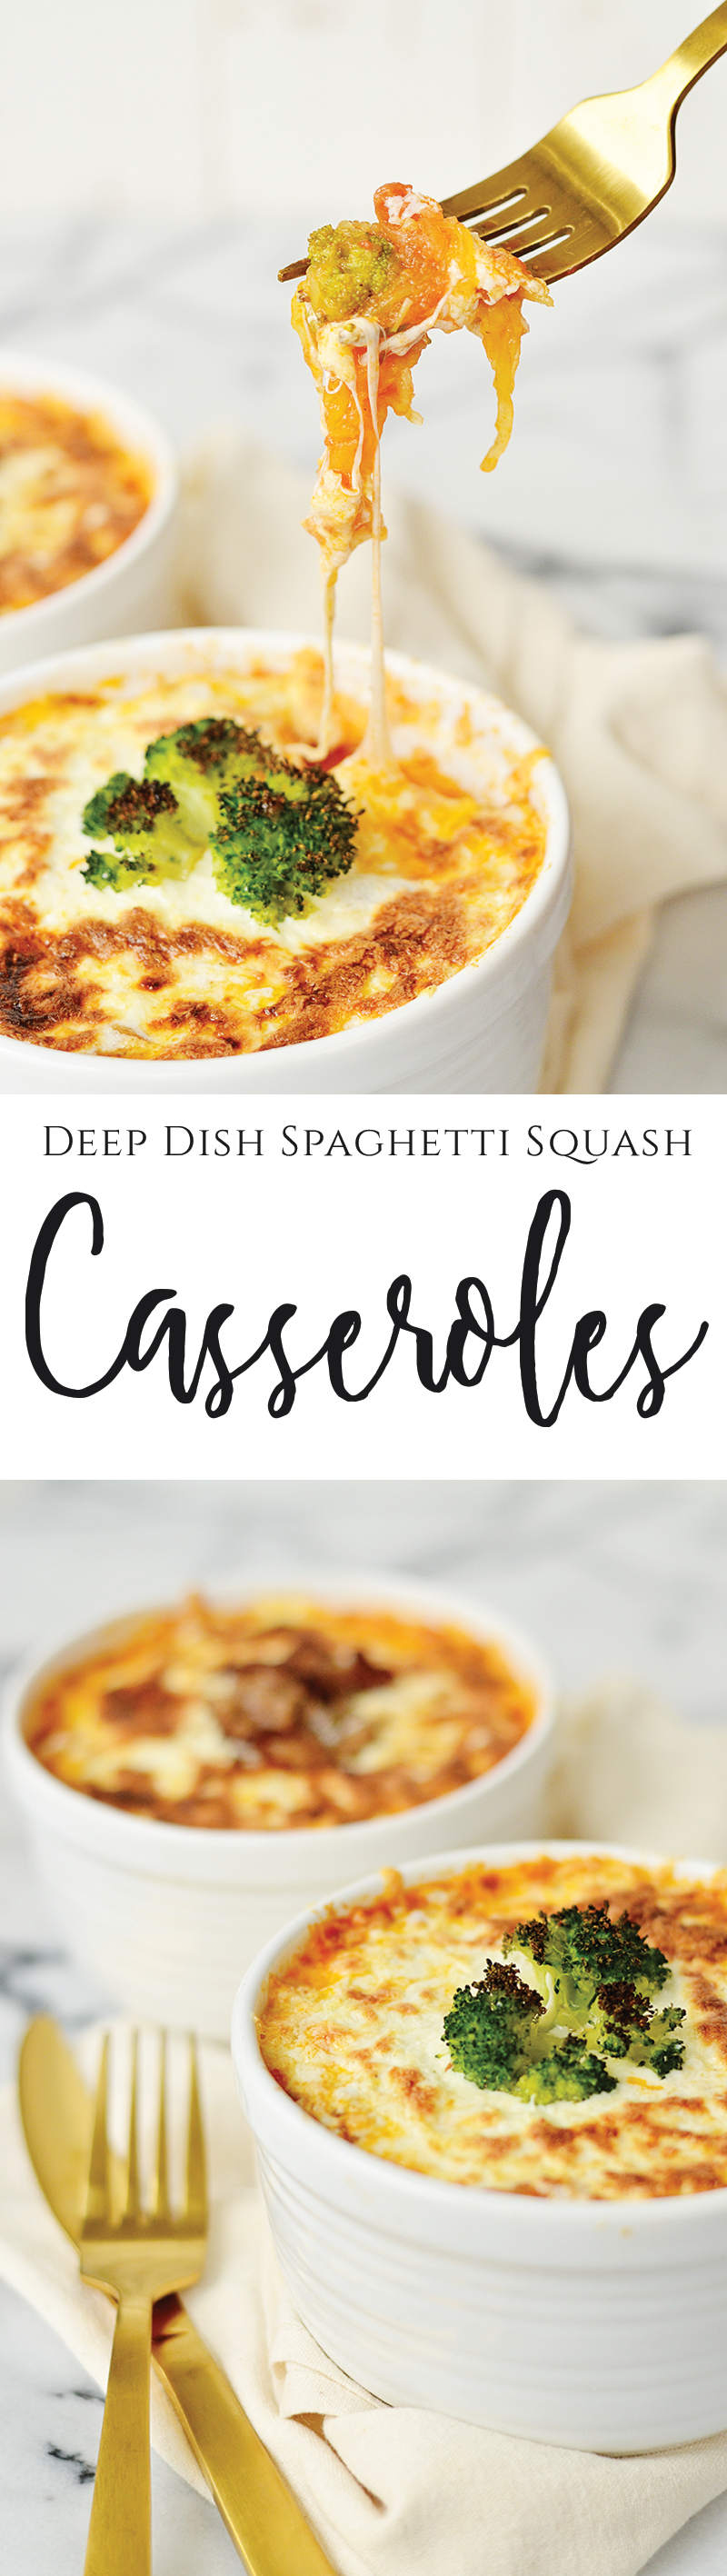 This beautiful Deep Dish Spaghetti Squash Casserole recipe is packed with layers of tender spaghetti squash, pizzeria-inspired toppings, and savory mozzarella. Satisfy your pizza cravings with this easy recipe that is low-carb, high flavor, and almost healthy!